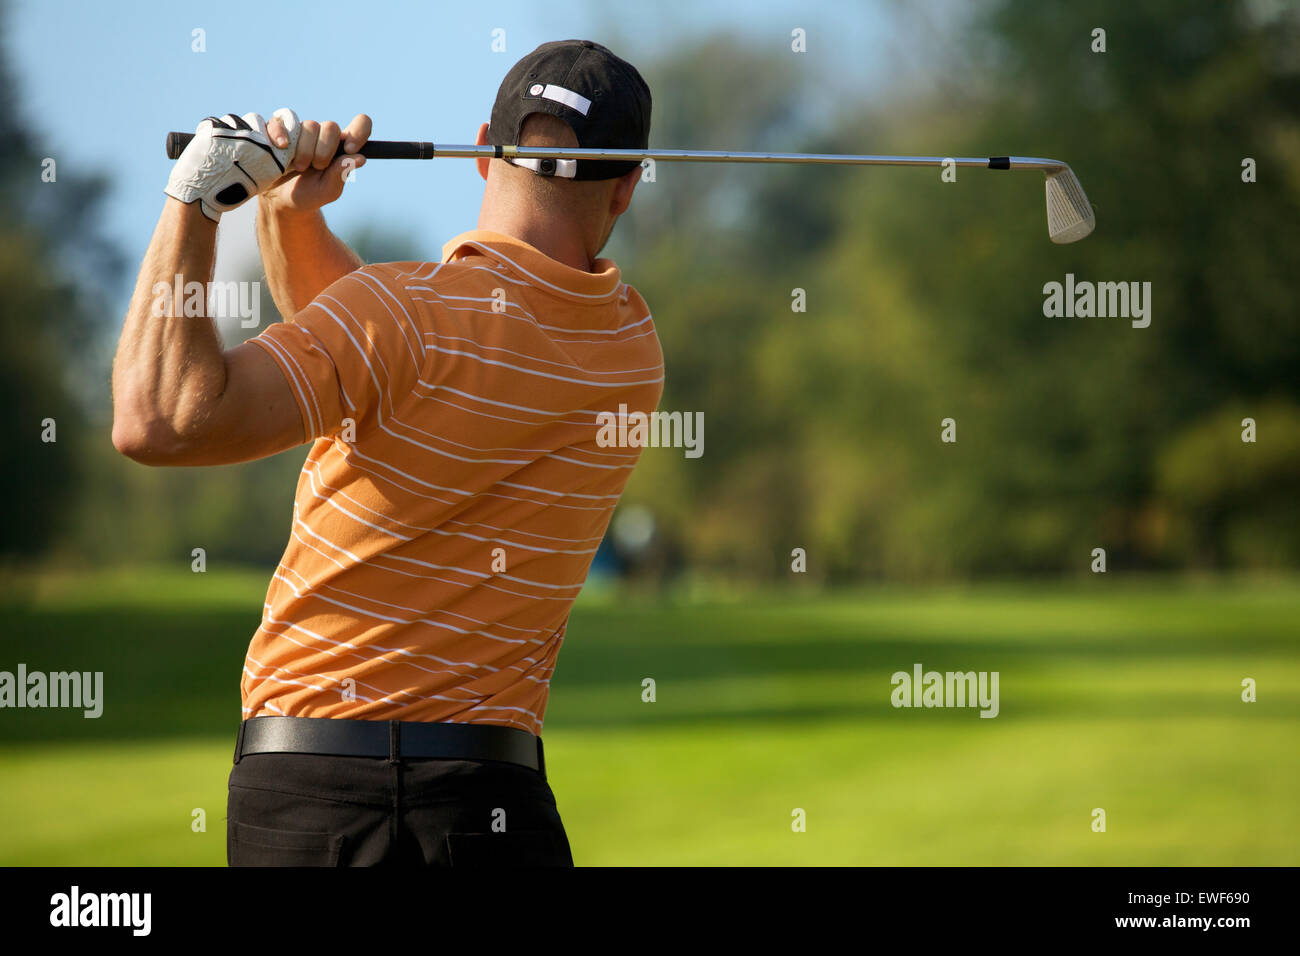 Young man swinging golf club, rear view - Stock Image